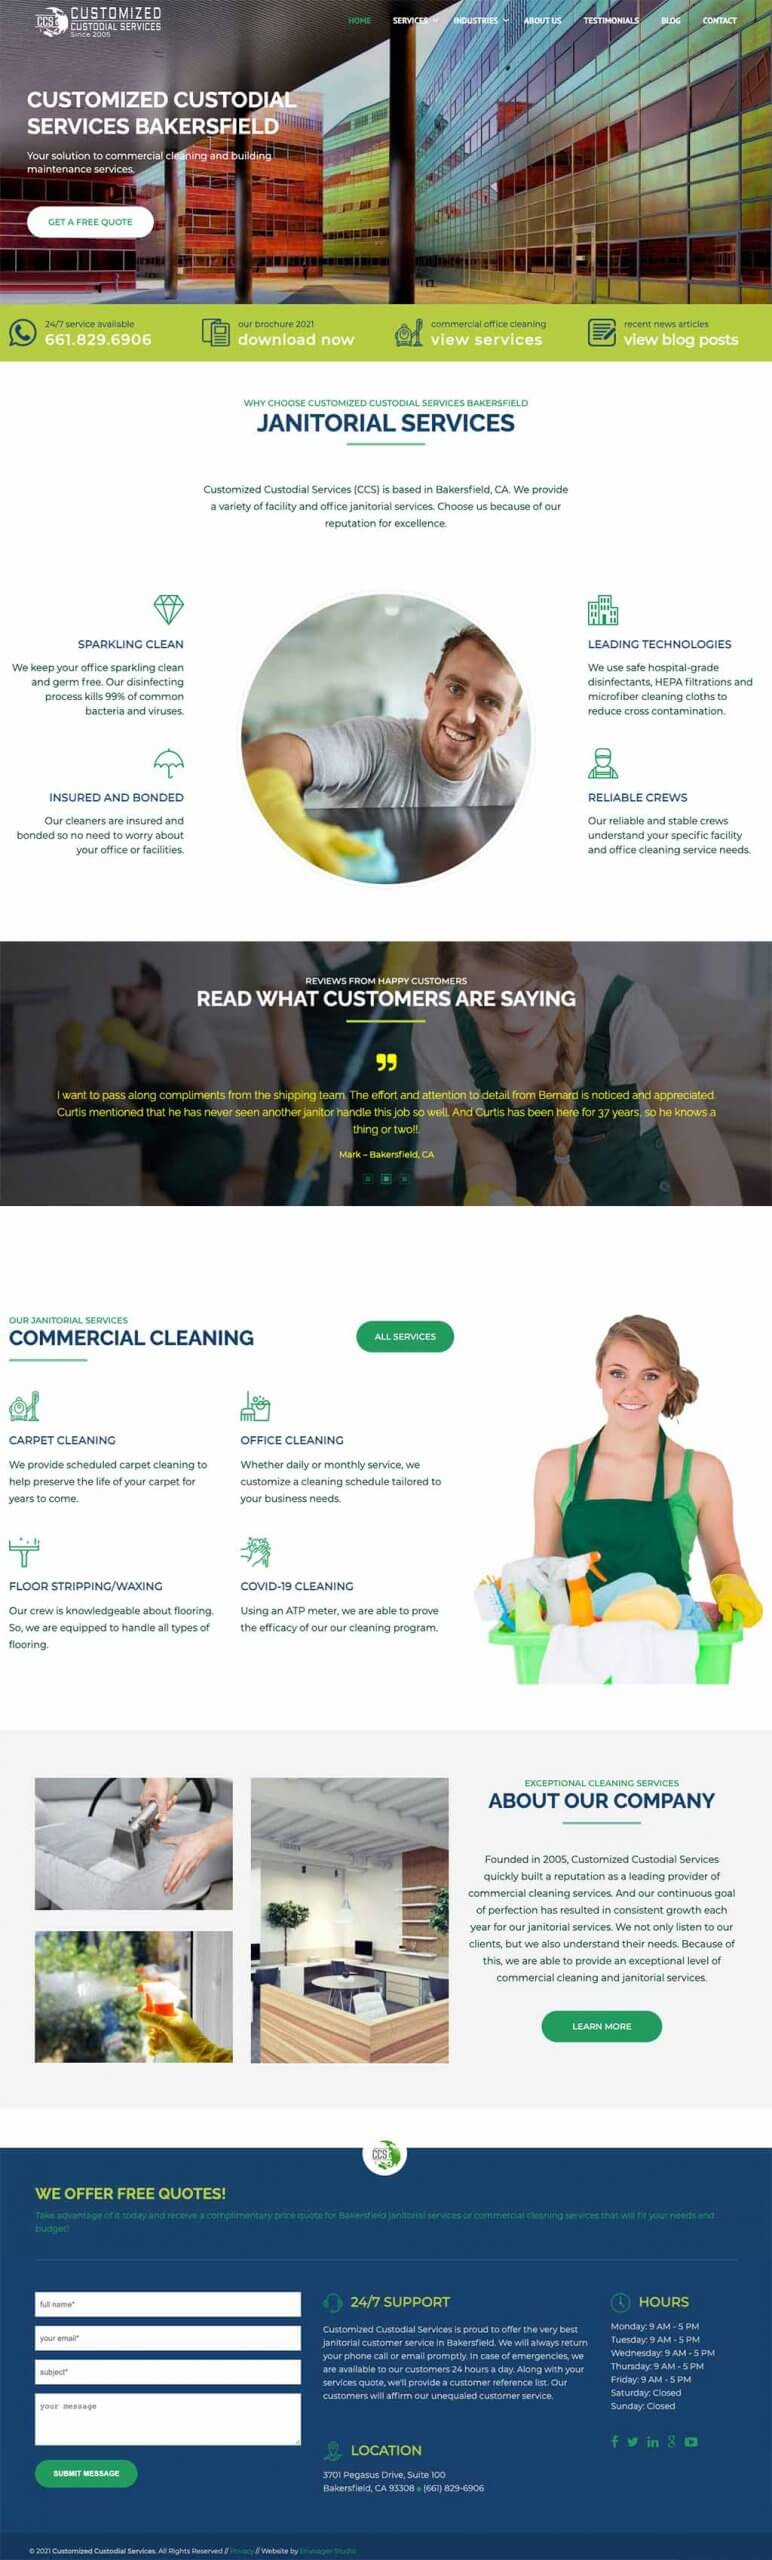 Cleaning Services Website Examples